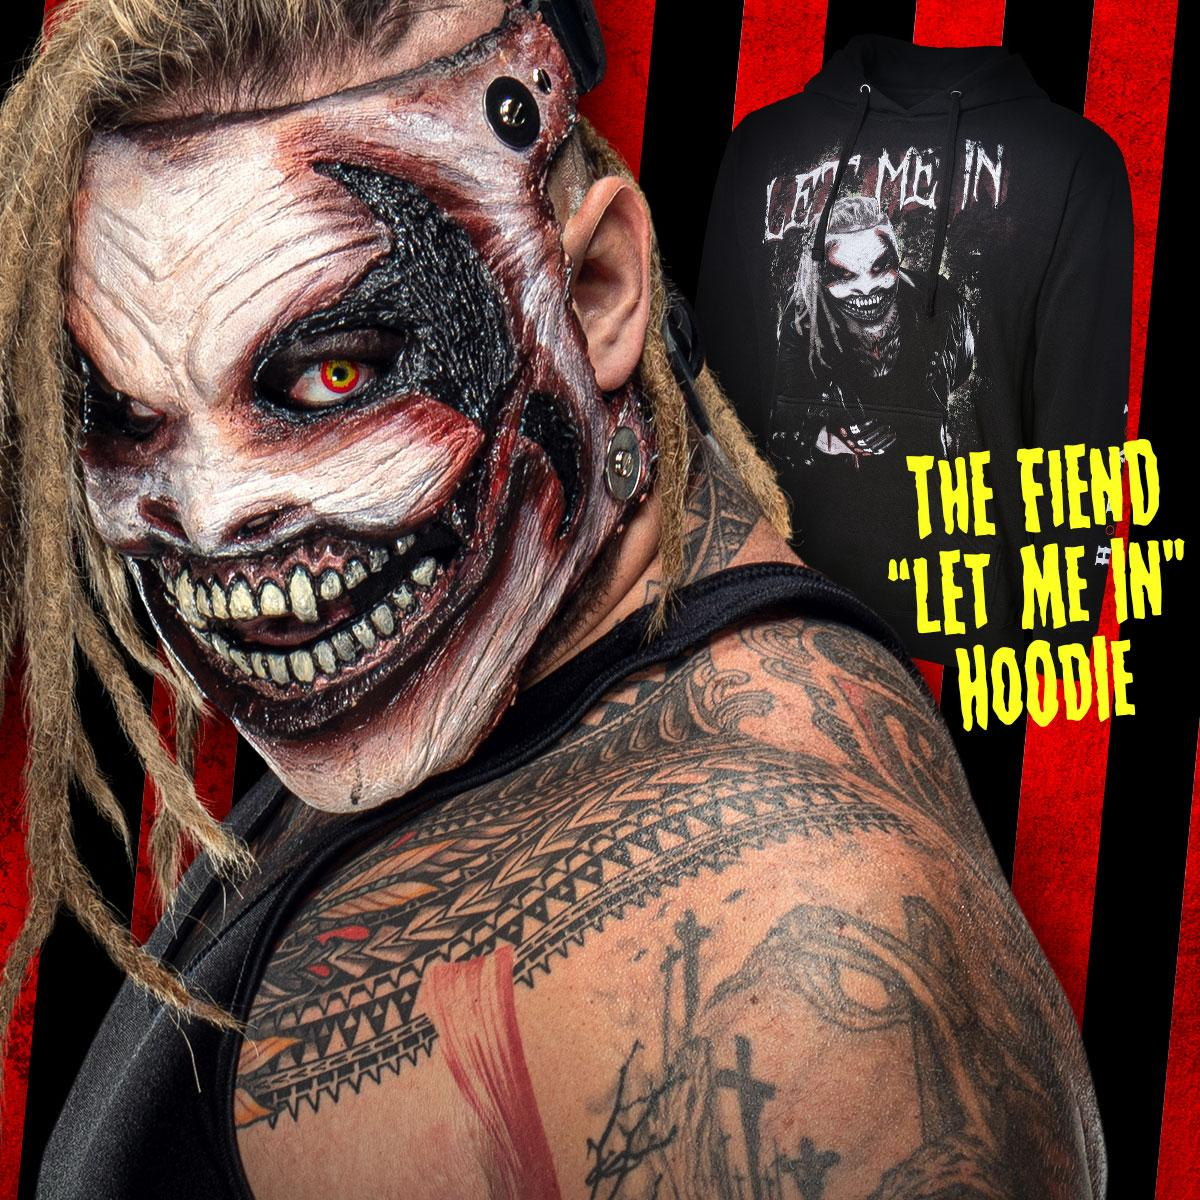 #LetMeIn! #TheFiend hoodie available now at . #WWE #WWEShop #BrayWyatt